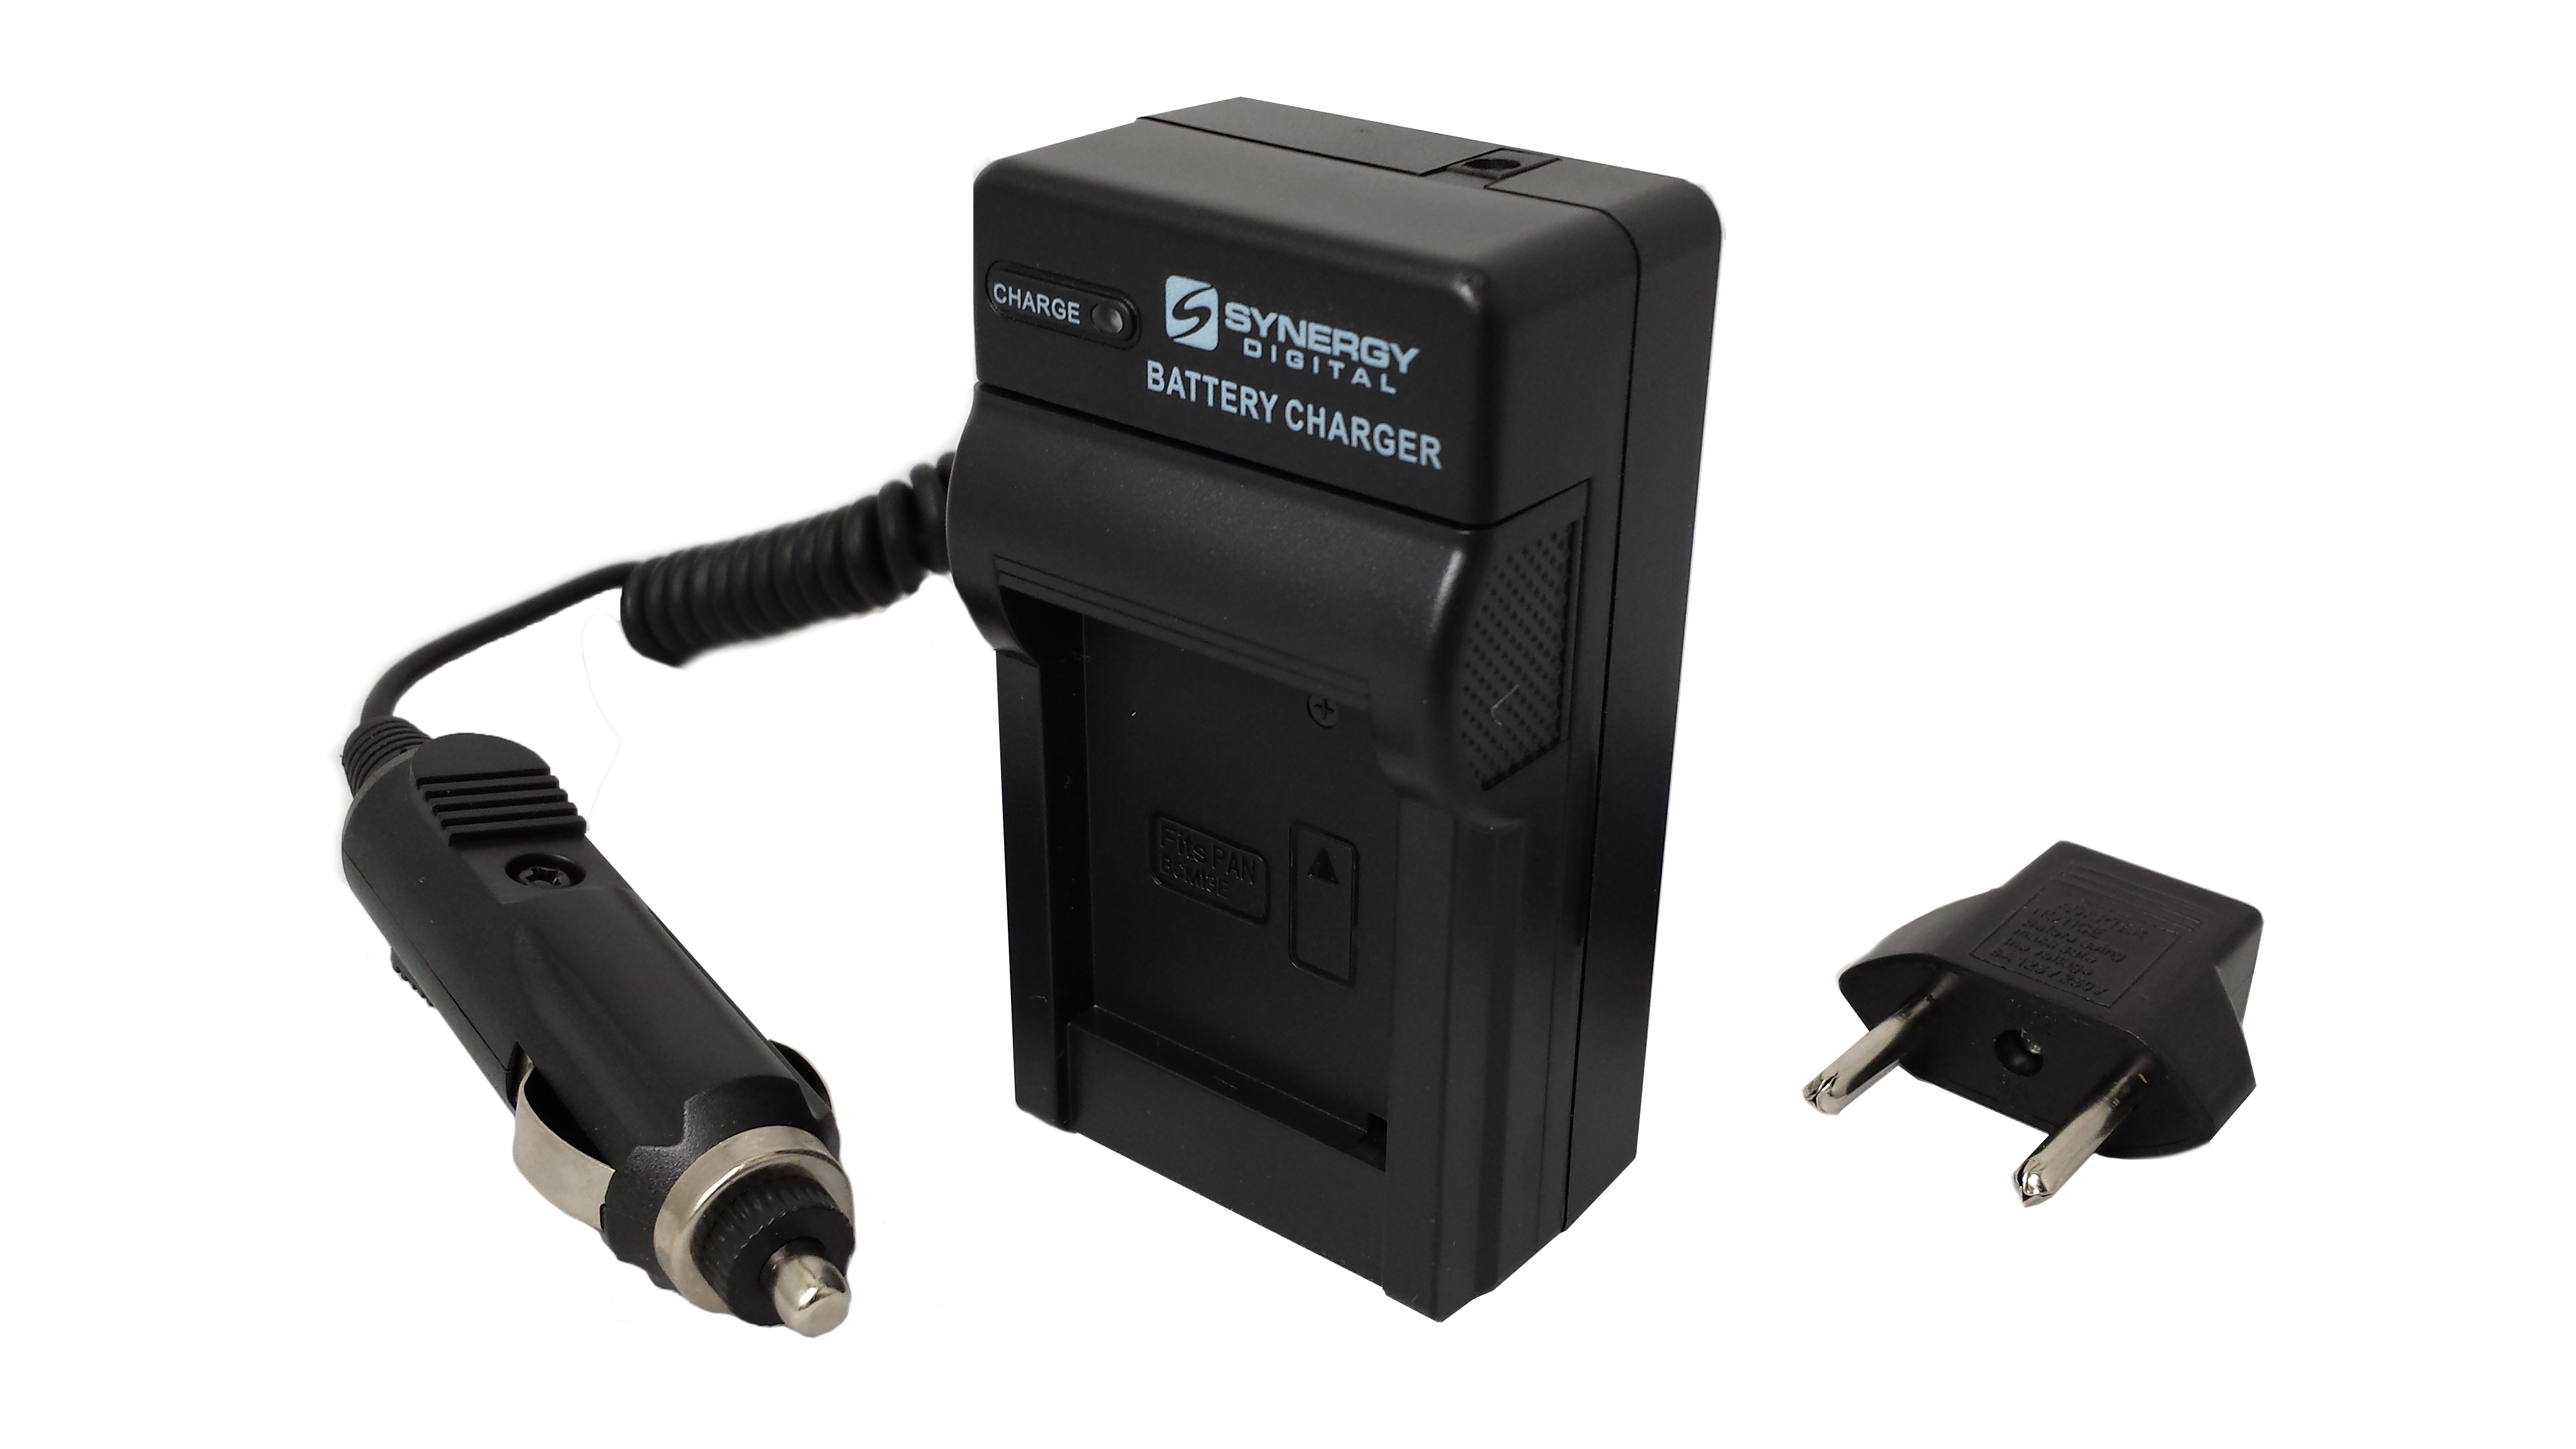 Synergy Digital JVC Everio GZ-MG150 Camcorder Battery Charger (110/220v with Car & EU adapters) - Replacement Charger for JVC BN-VF808, BN-VF815 at Sears.com